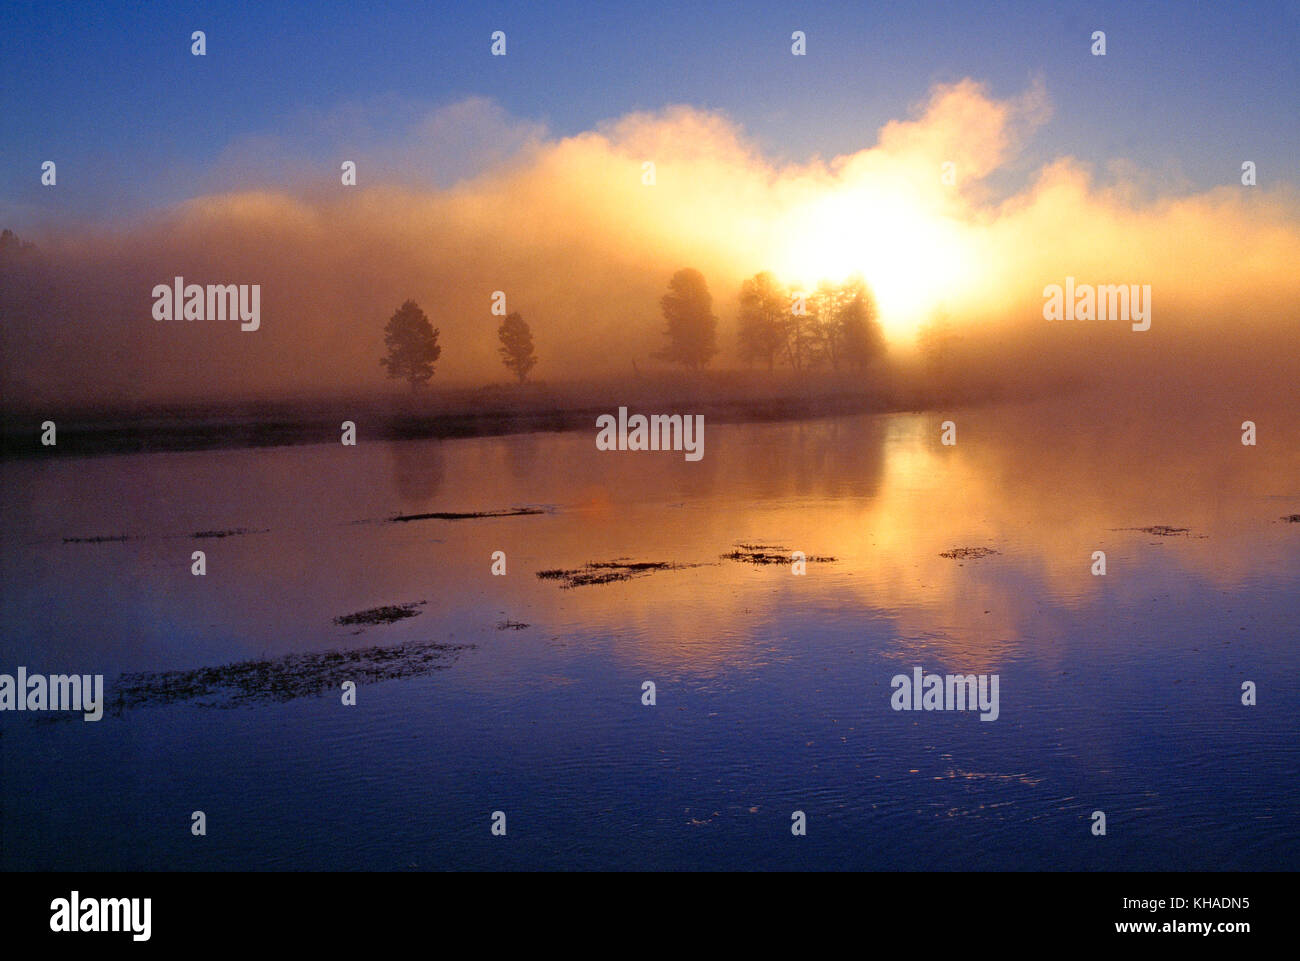 USA. Wyoming. Yellowstone National Park. Misty sunrise over Alum Creek. - Stock Image